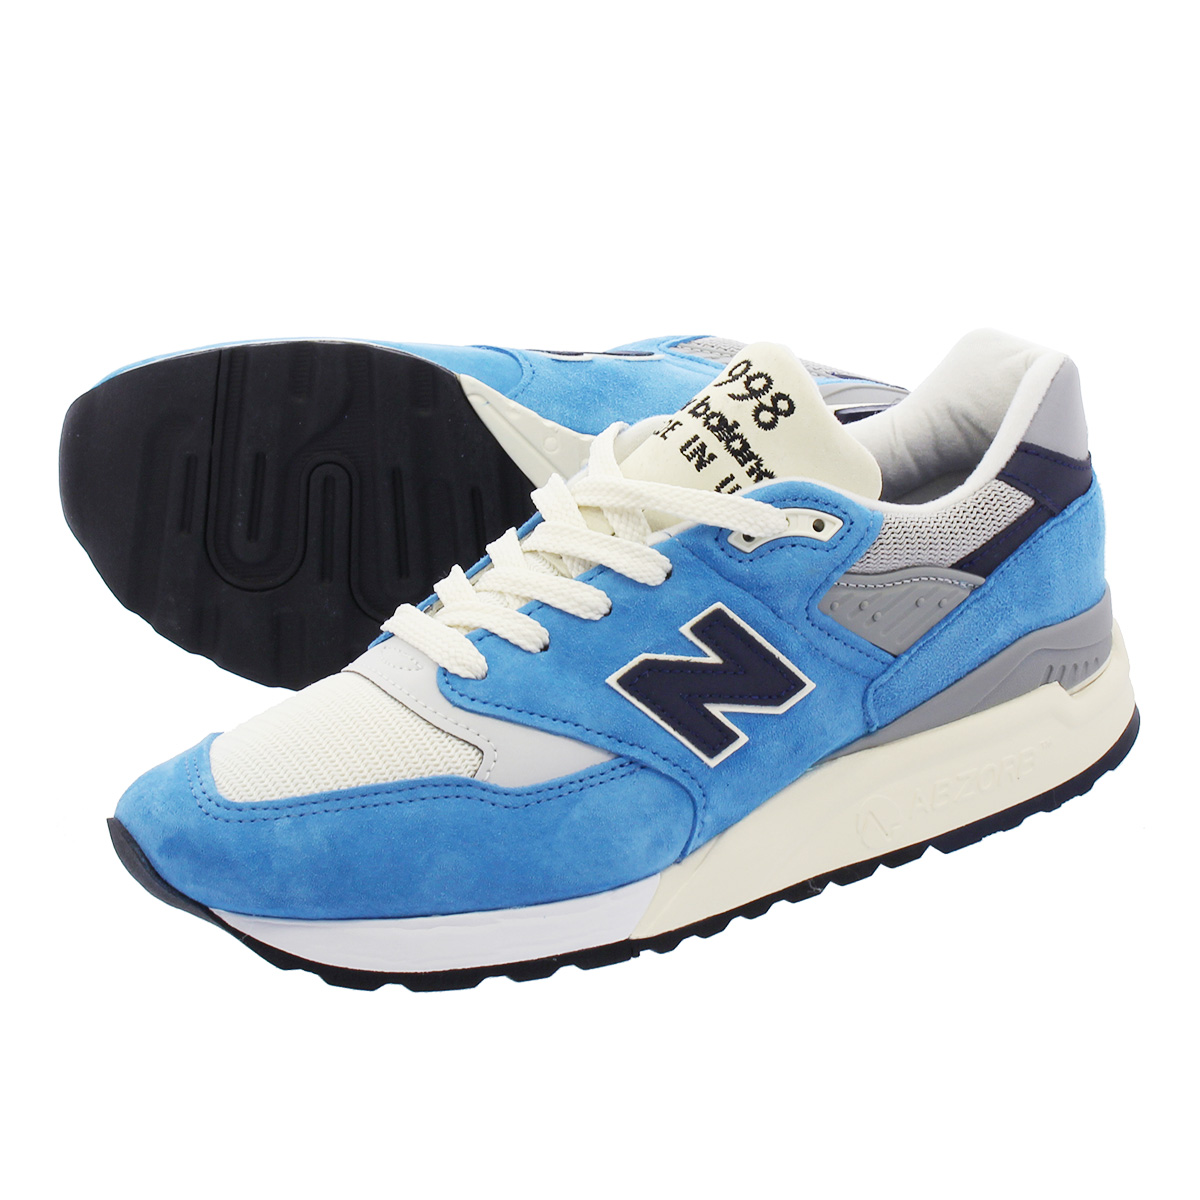 NEW BALANCE M998JCW 【J.CREW】【MADE IN U.S.A.】 【Dワイズ】 ニューバランス M 998 JCWBLUE/NAVY/WHITE